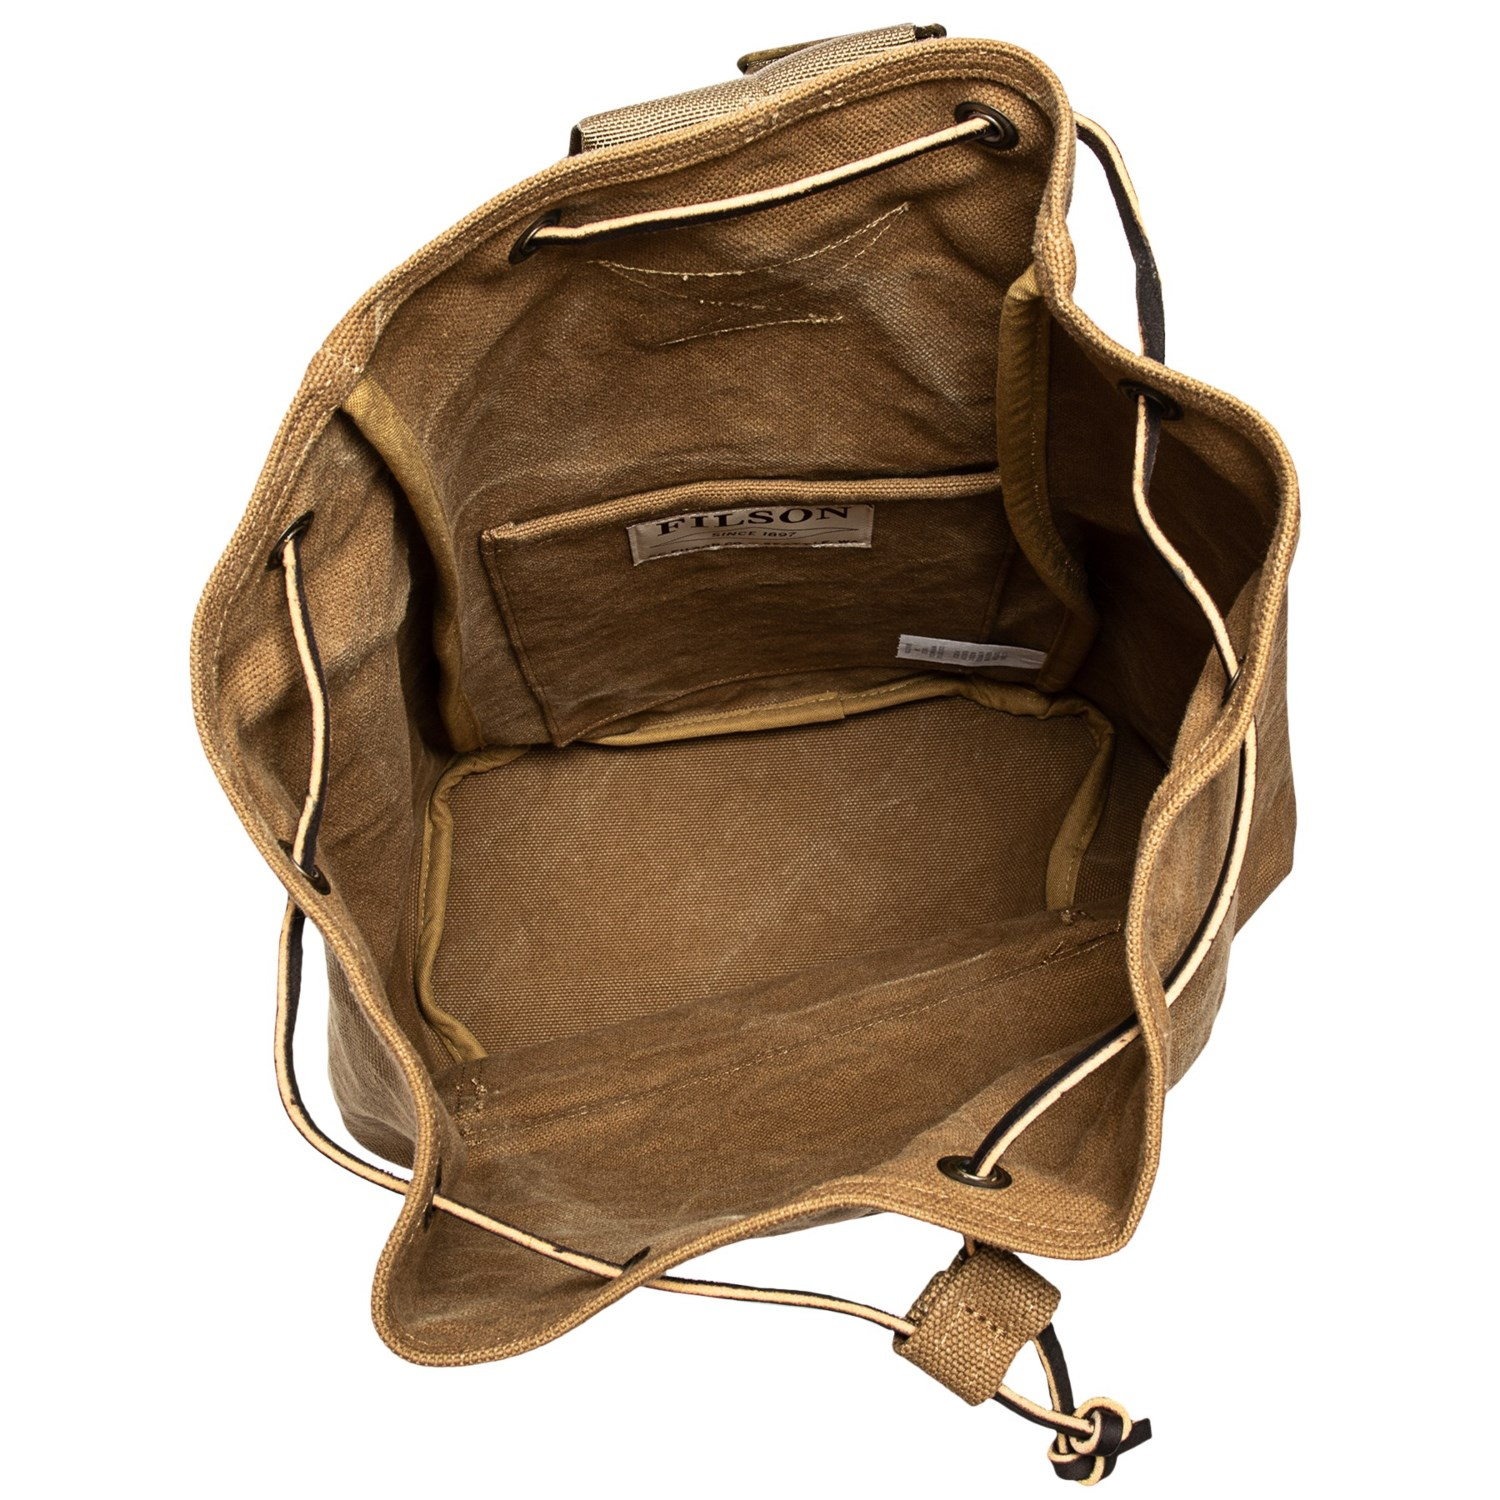 f274e4bff6 Filson Washed Canvas 13L Cinch Backpack - Save 43%